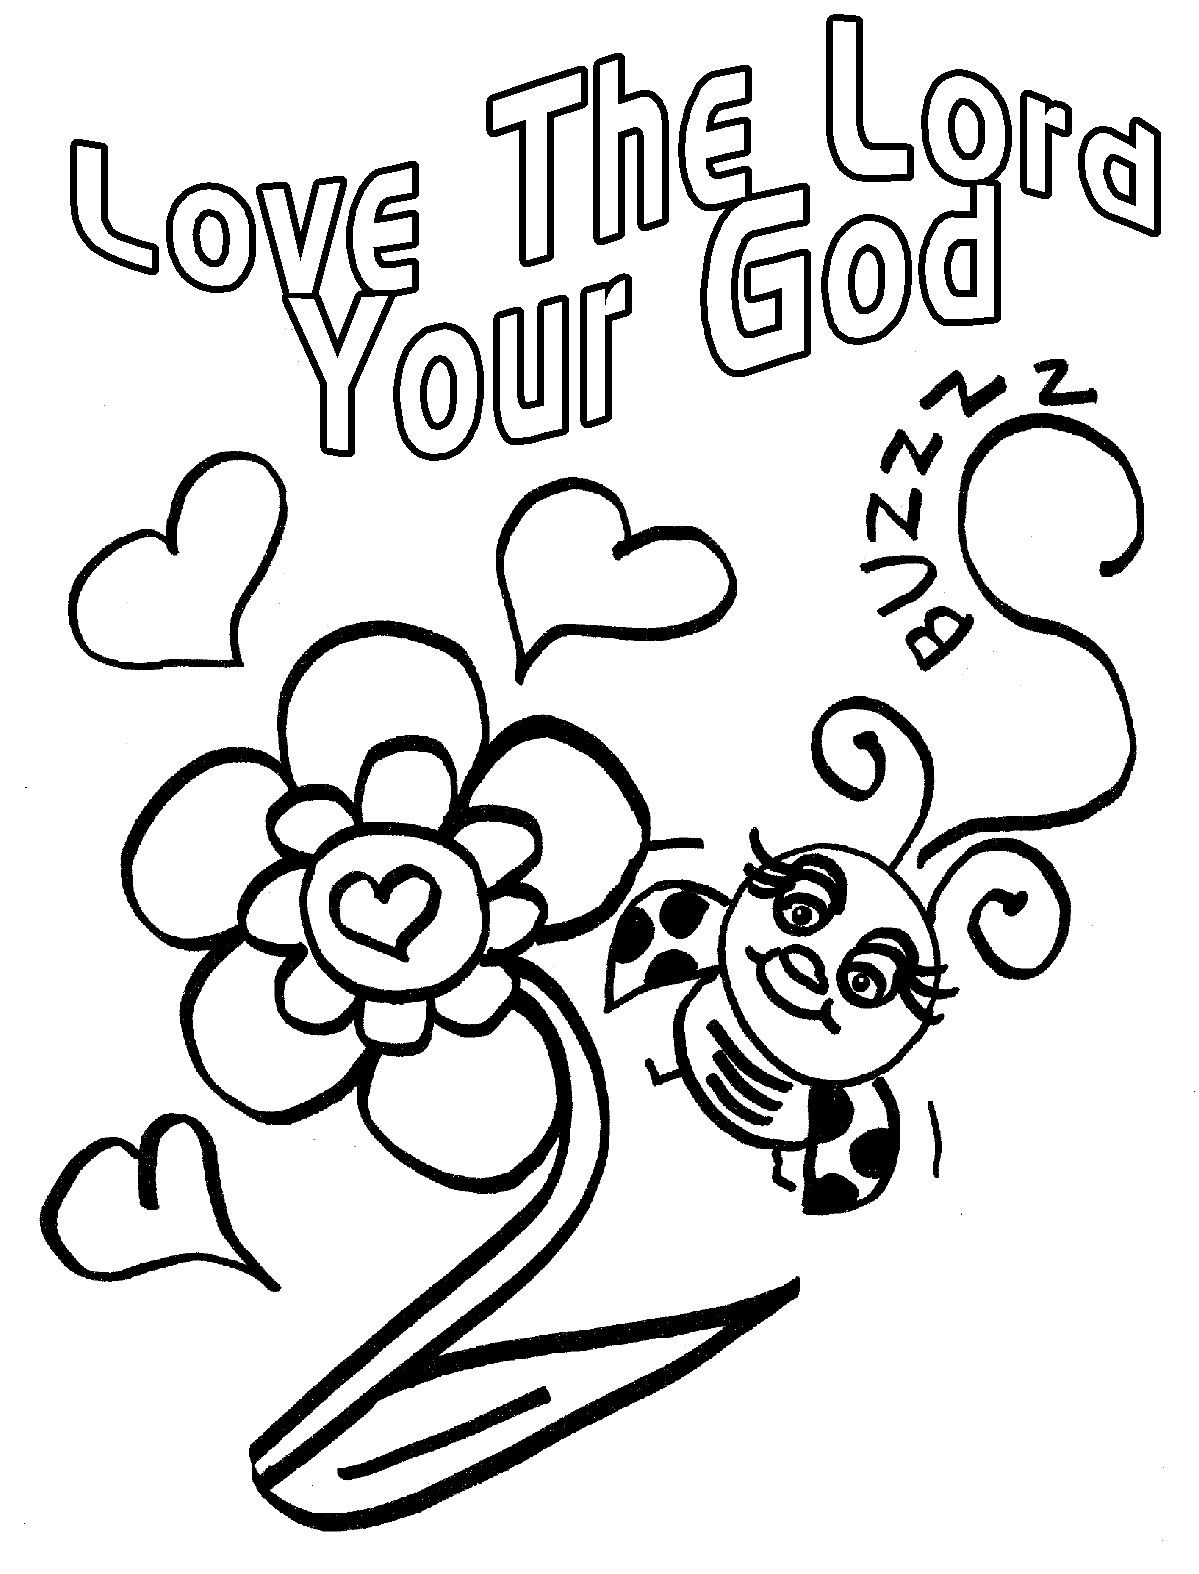 1199x1574 Childrens Gems In My Treasure Box Love Bug For Jesus Coloring